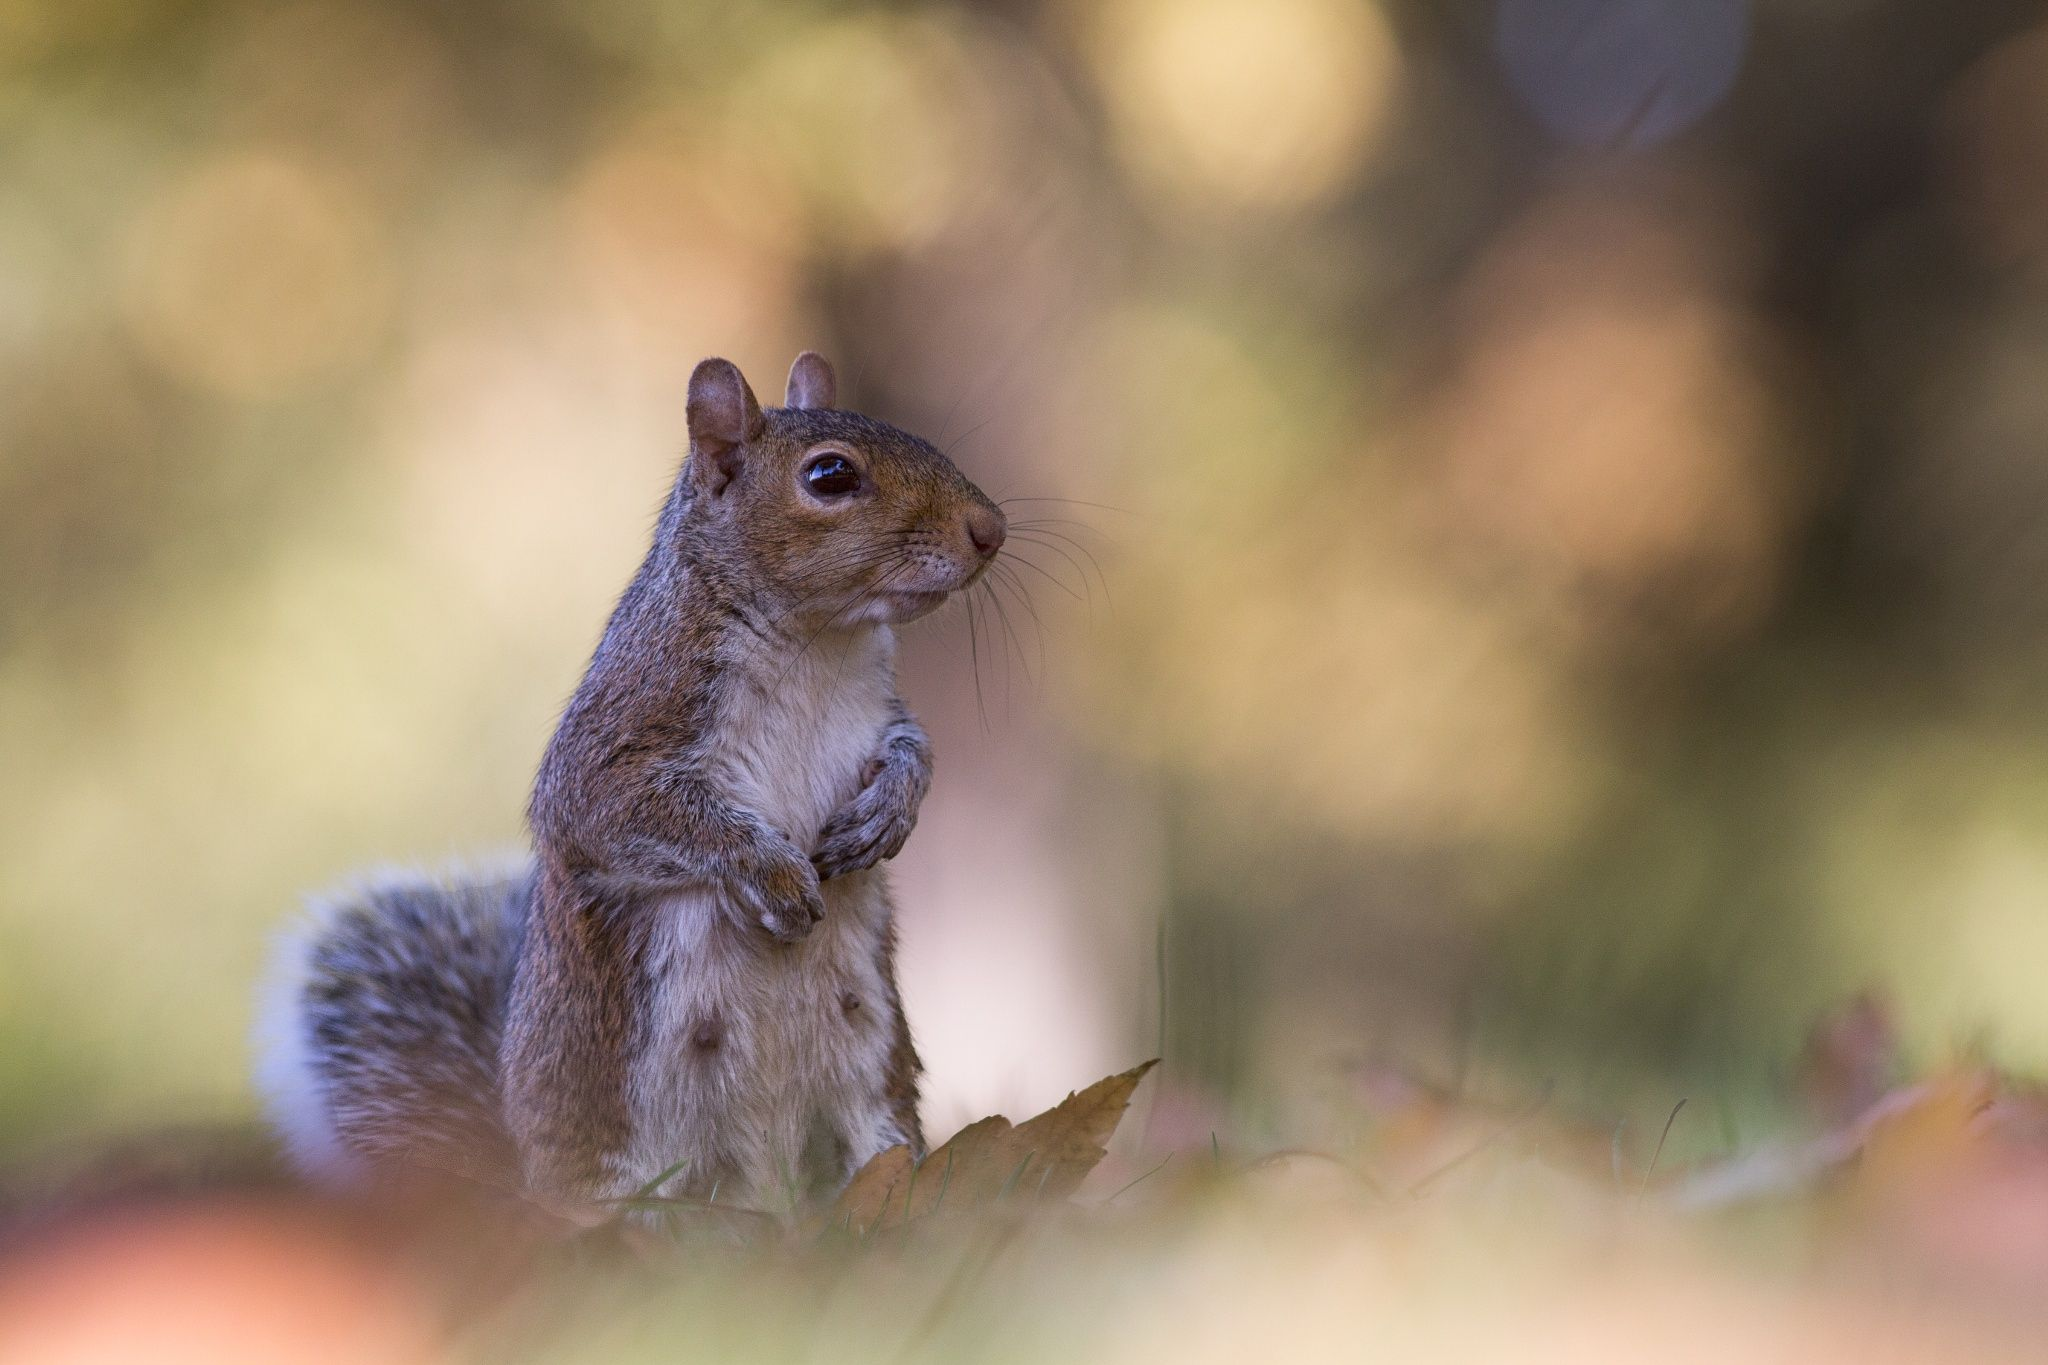 Miss Nutsy - A small squirrel of Hyde park